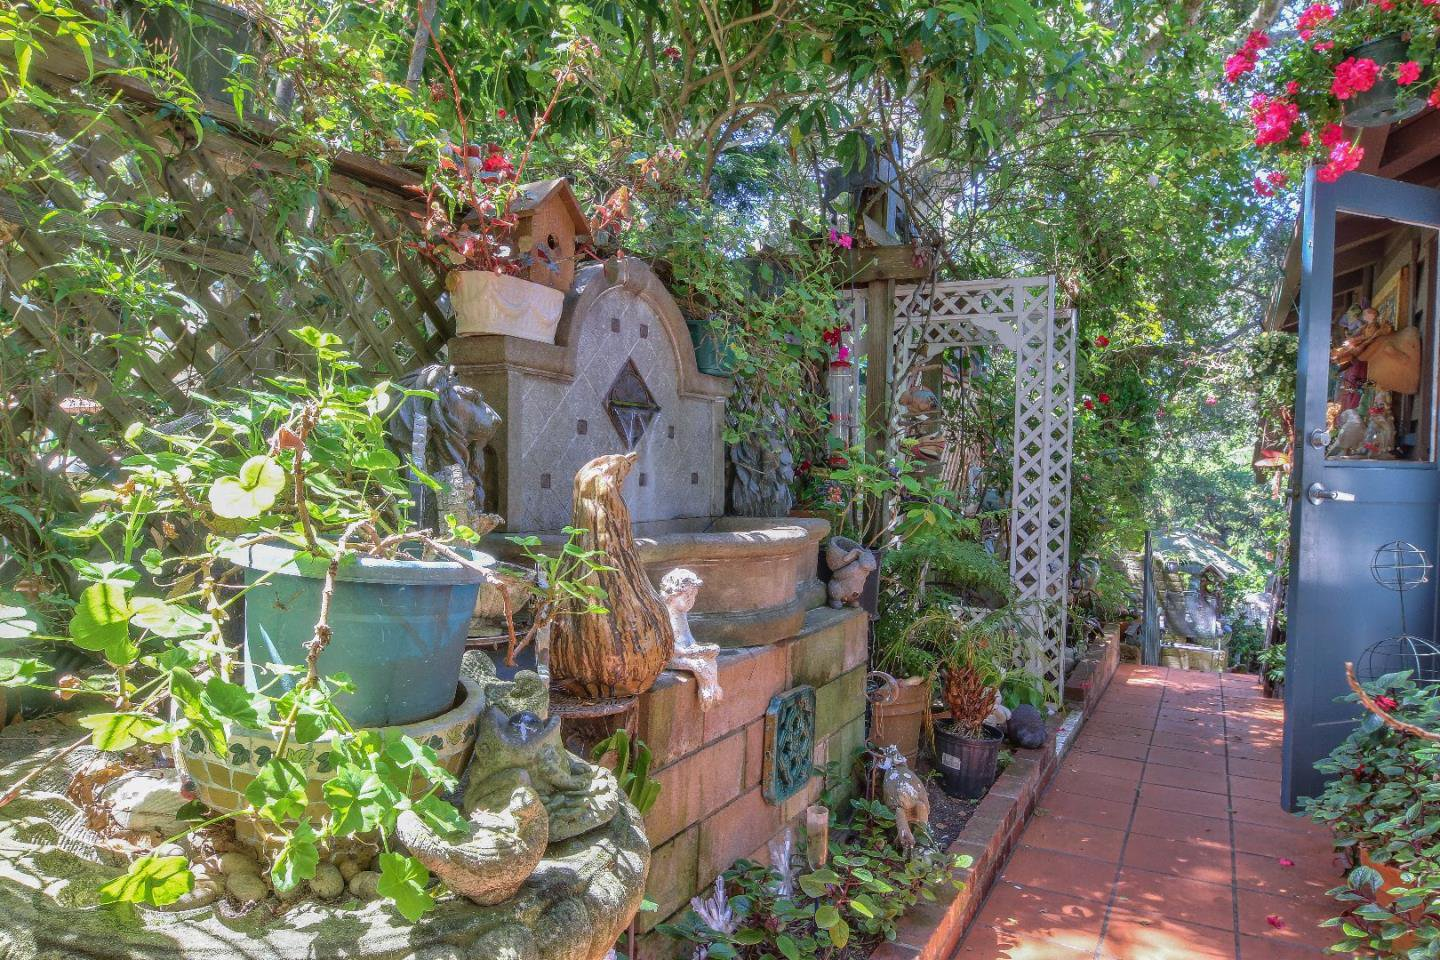 Enchanting walkway and plants adorn the property.